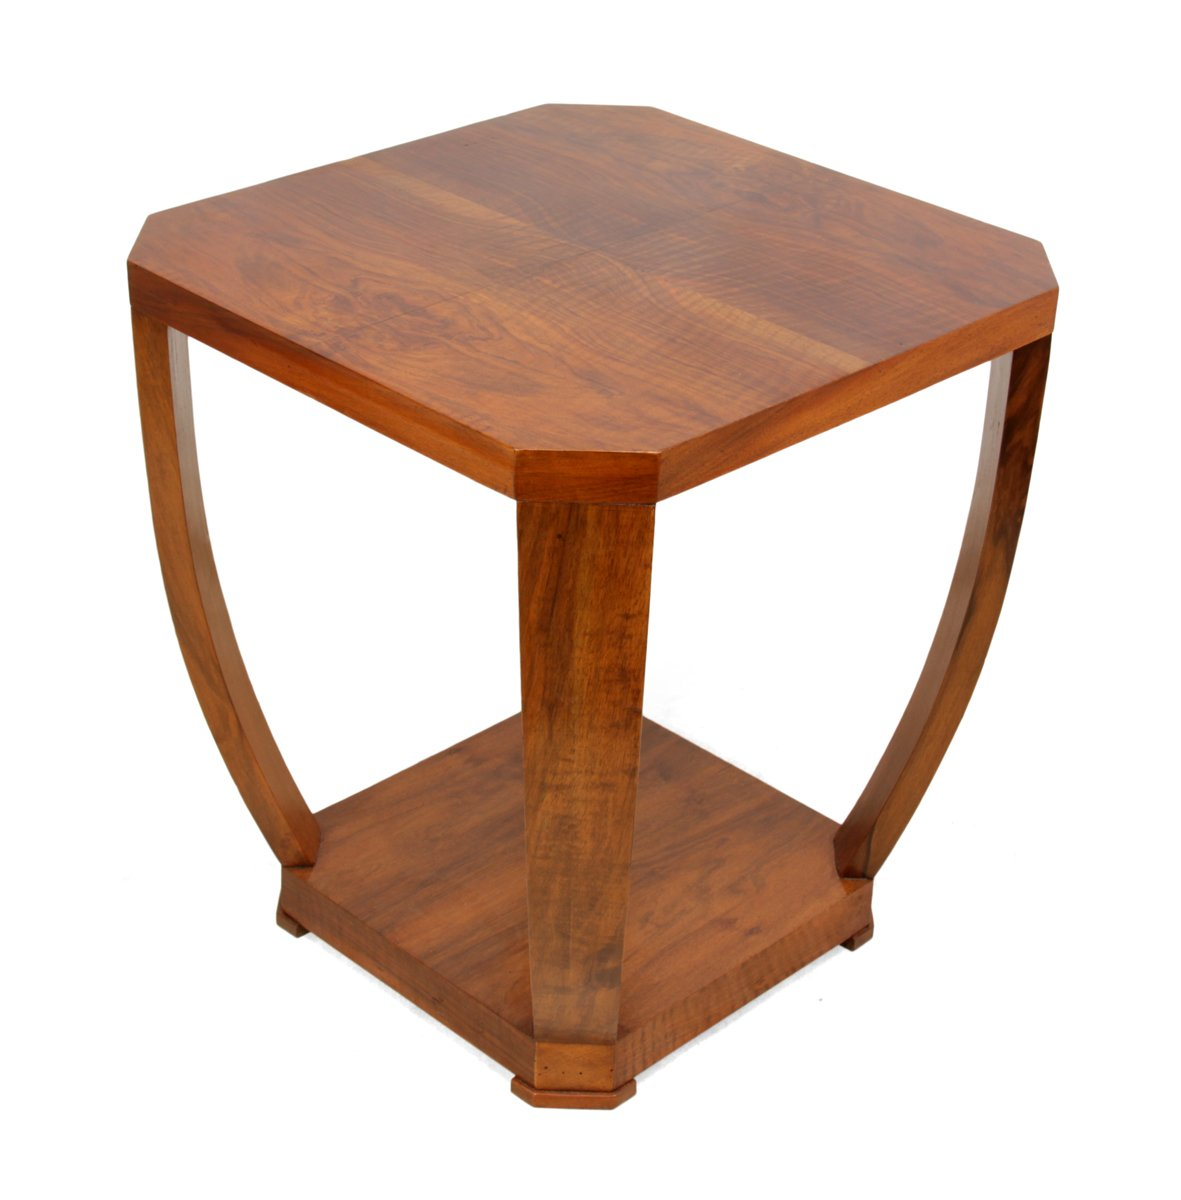 art deco walnut side table 1930s for sale at pamono. Black Bedroom Furniture Sets. Home Design Ideas